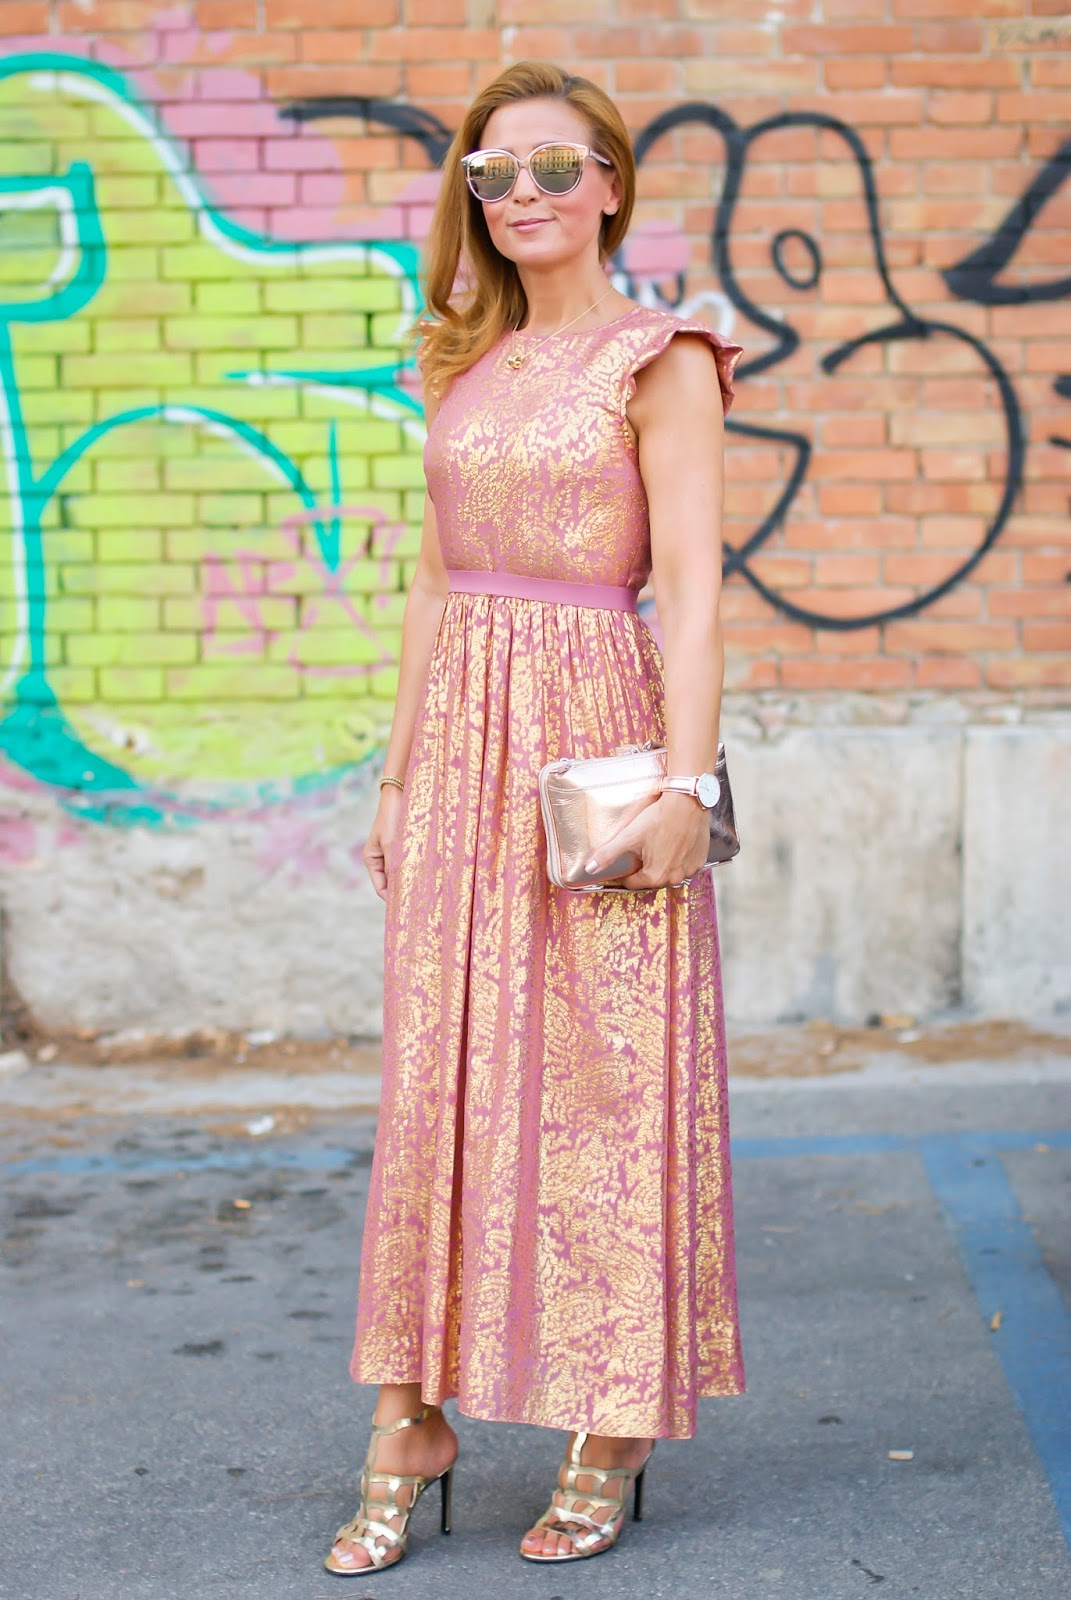 How to dress to a wedding on Fashion and Cookies fashion blog, fashion blogger